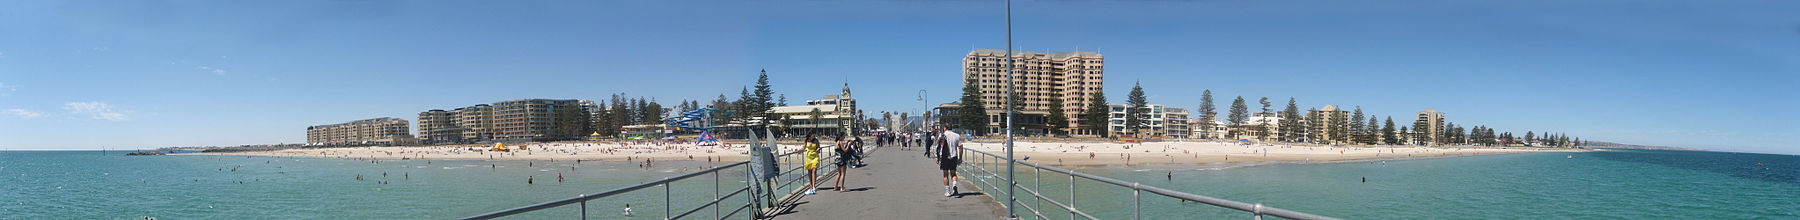 Glenelg Foreshore South Australia.jpg